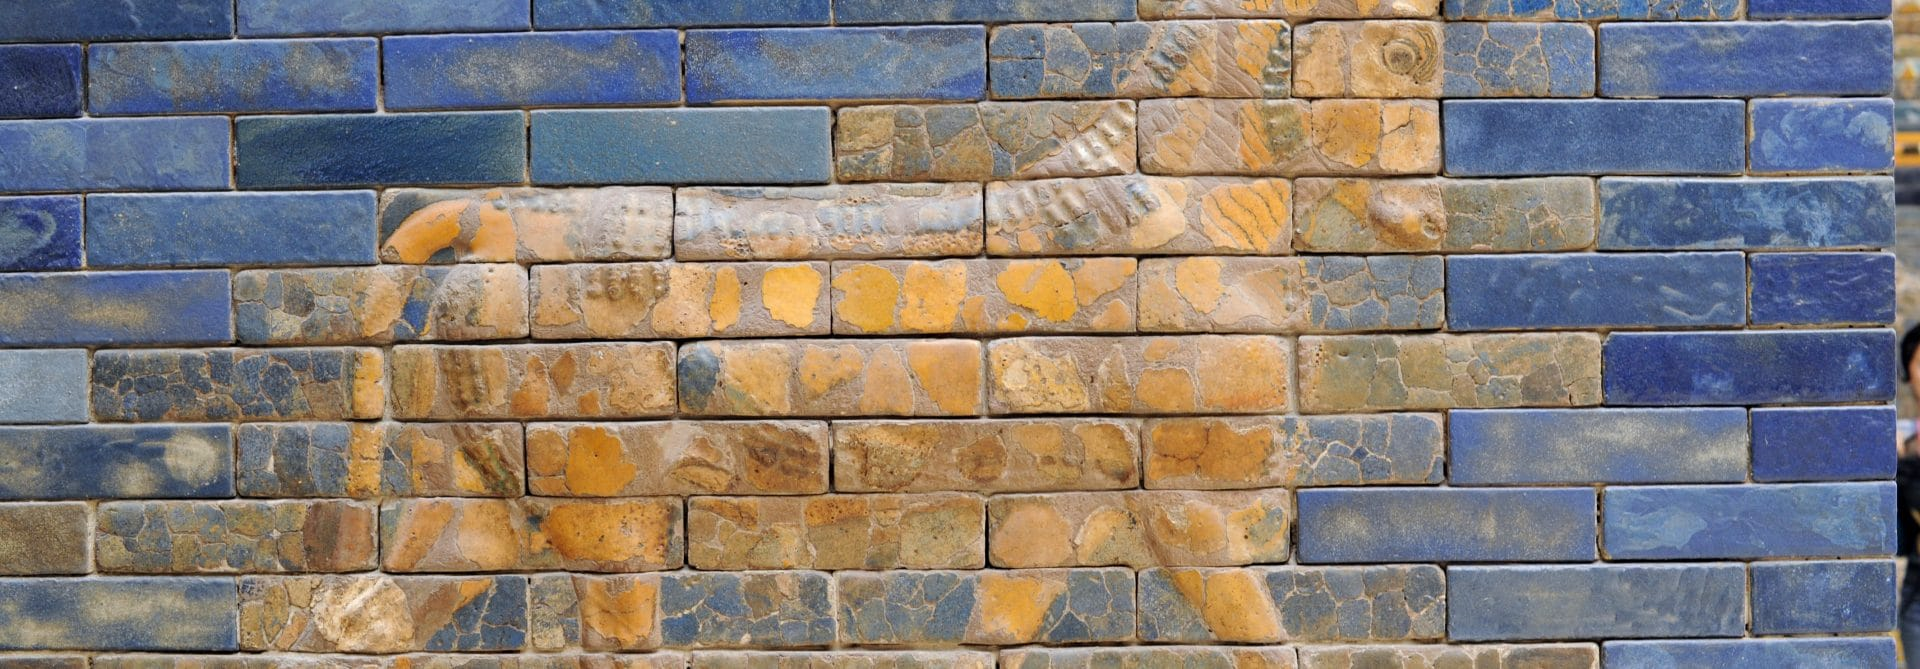 Ishtar Gate - Berlin, Germany